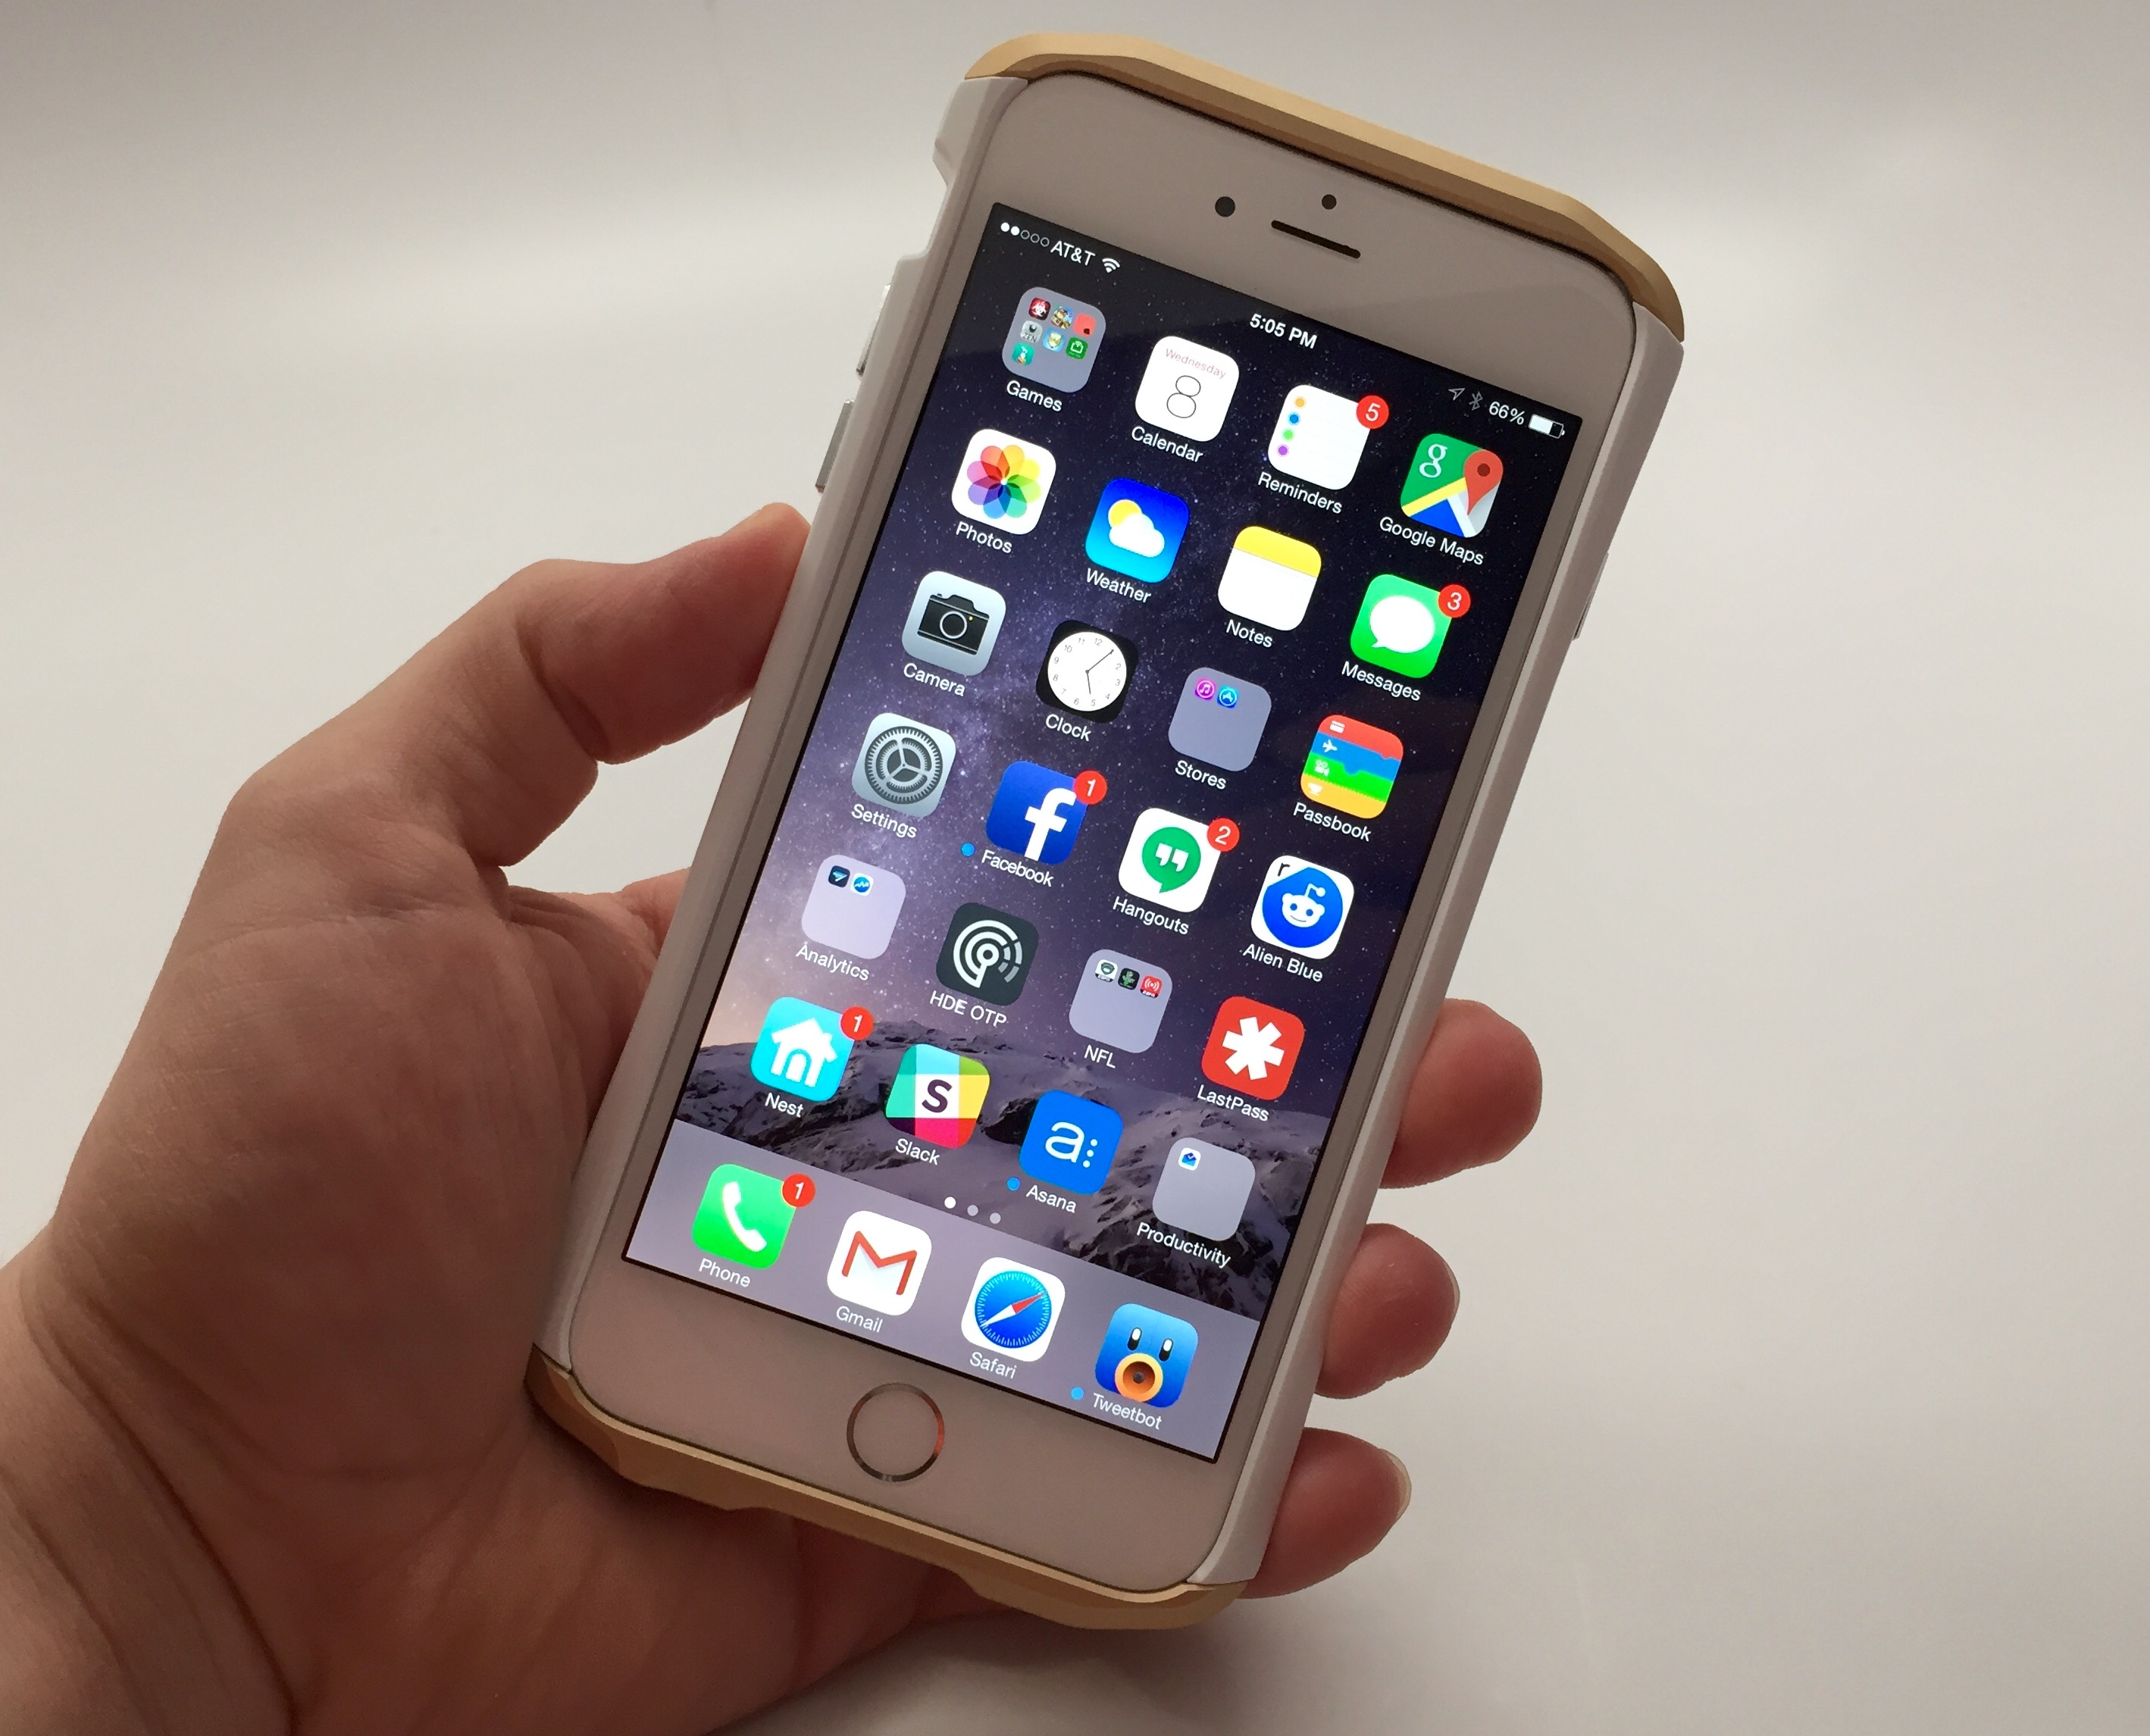 So far the iPhone 6 Plus connectivity is solid on iOS 8.3, and it promises fixes for WiFi problems.